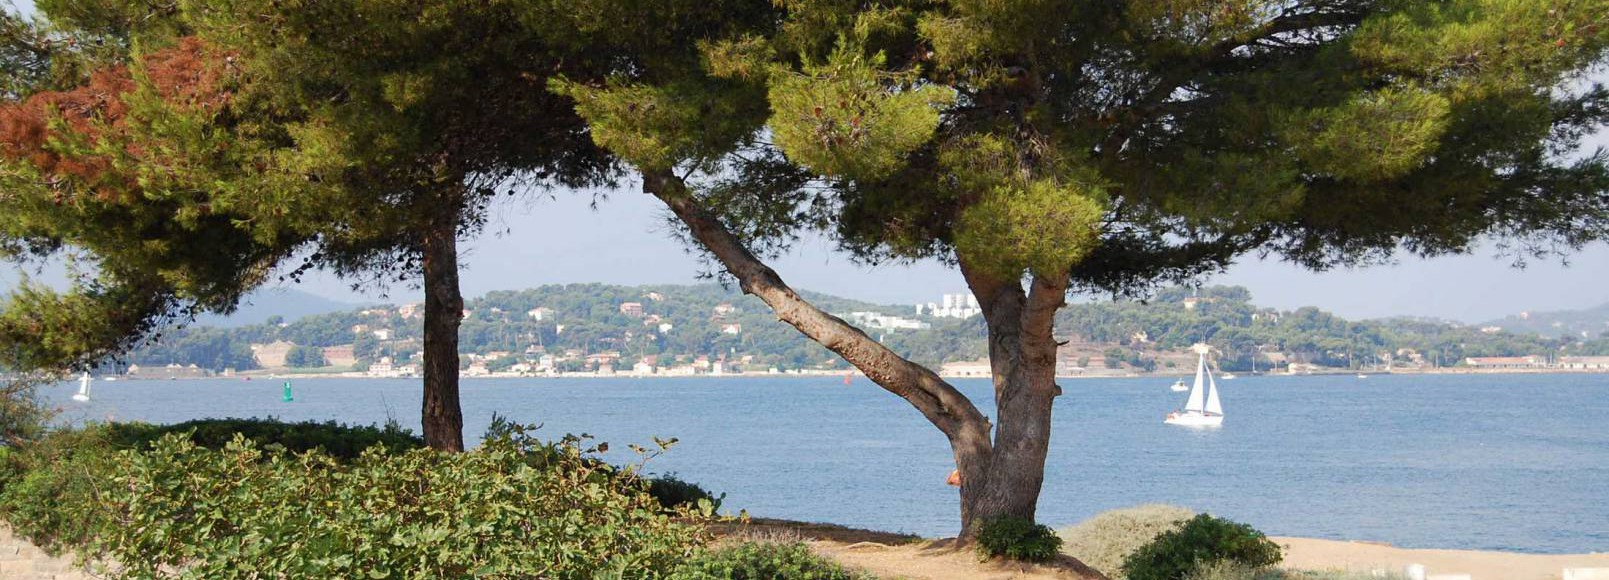 Official Toulon Tourist Office website Toulon Tourisme – Toulon Tourist Map